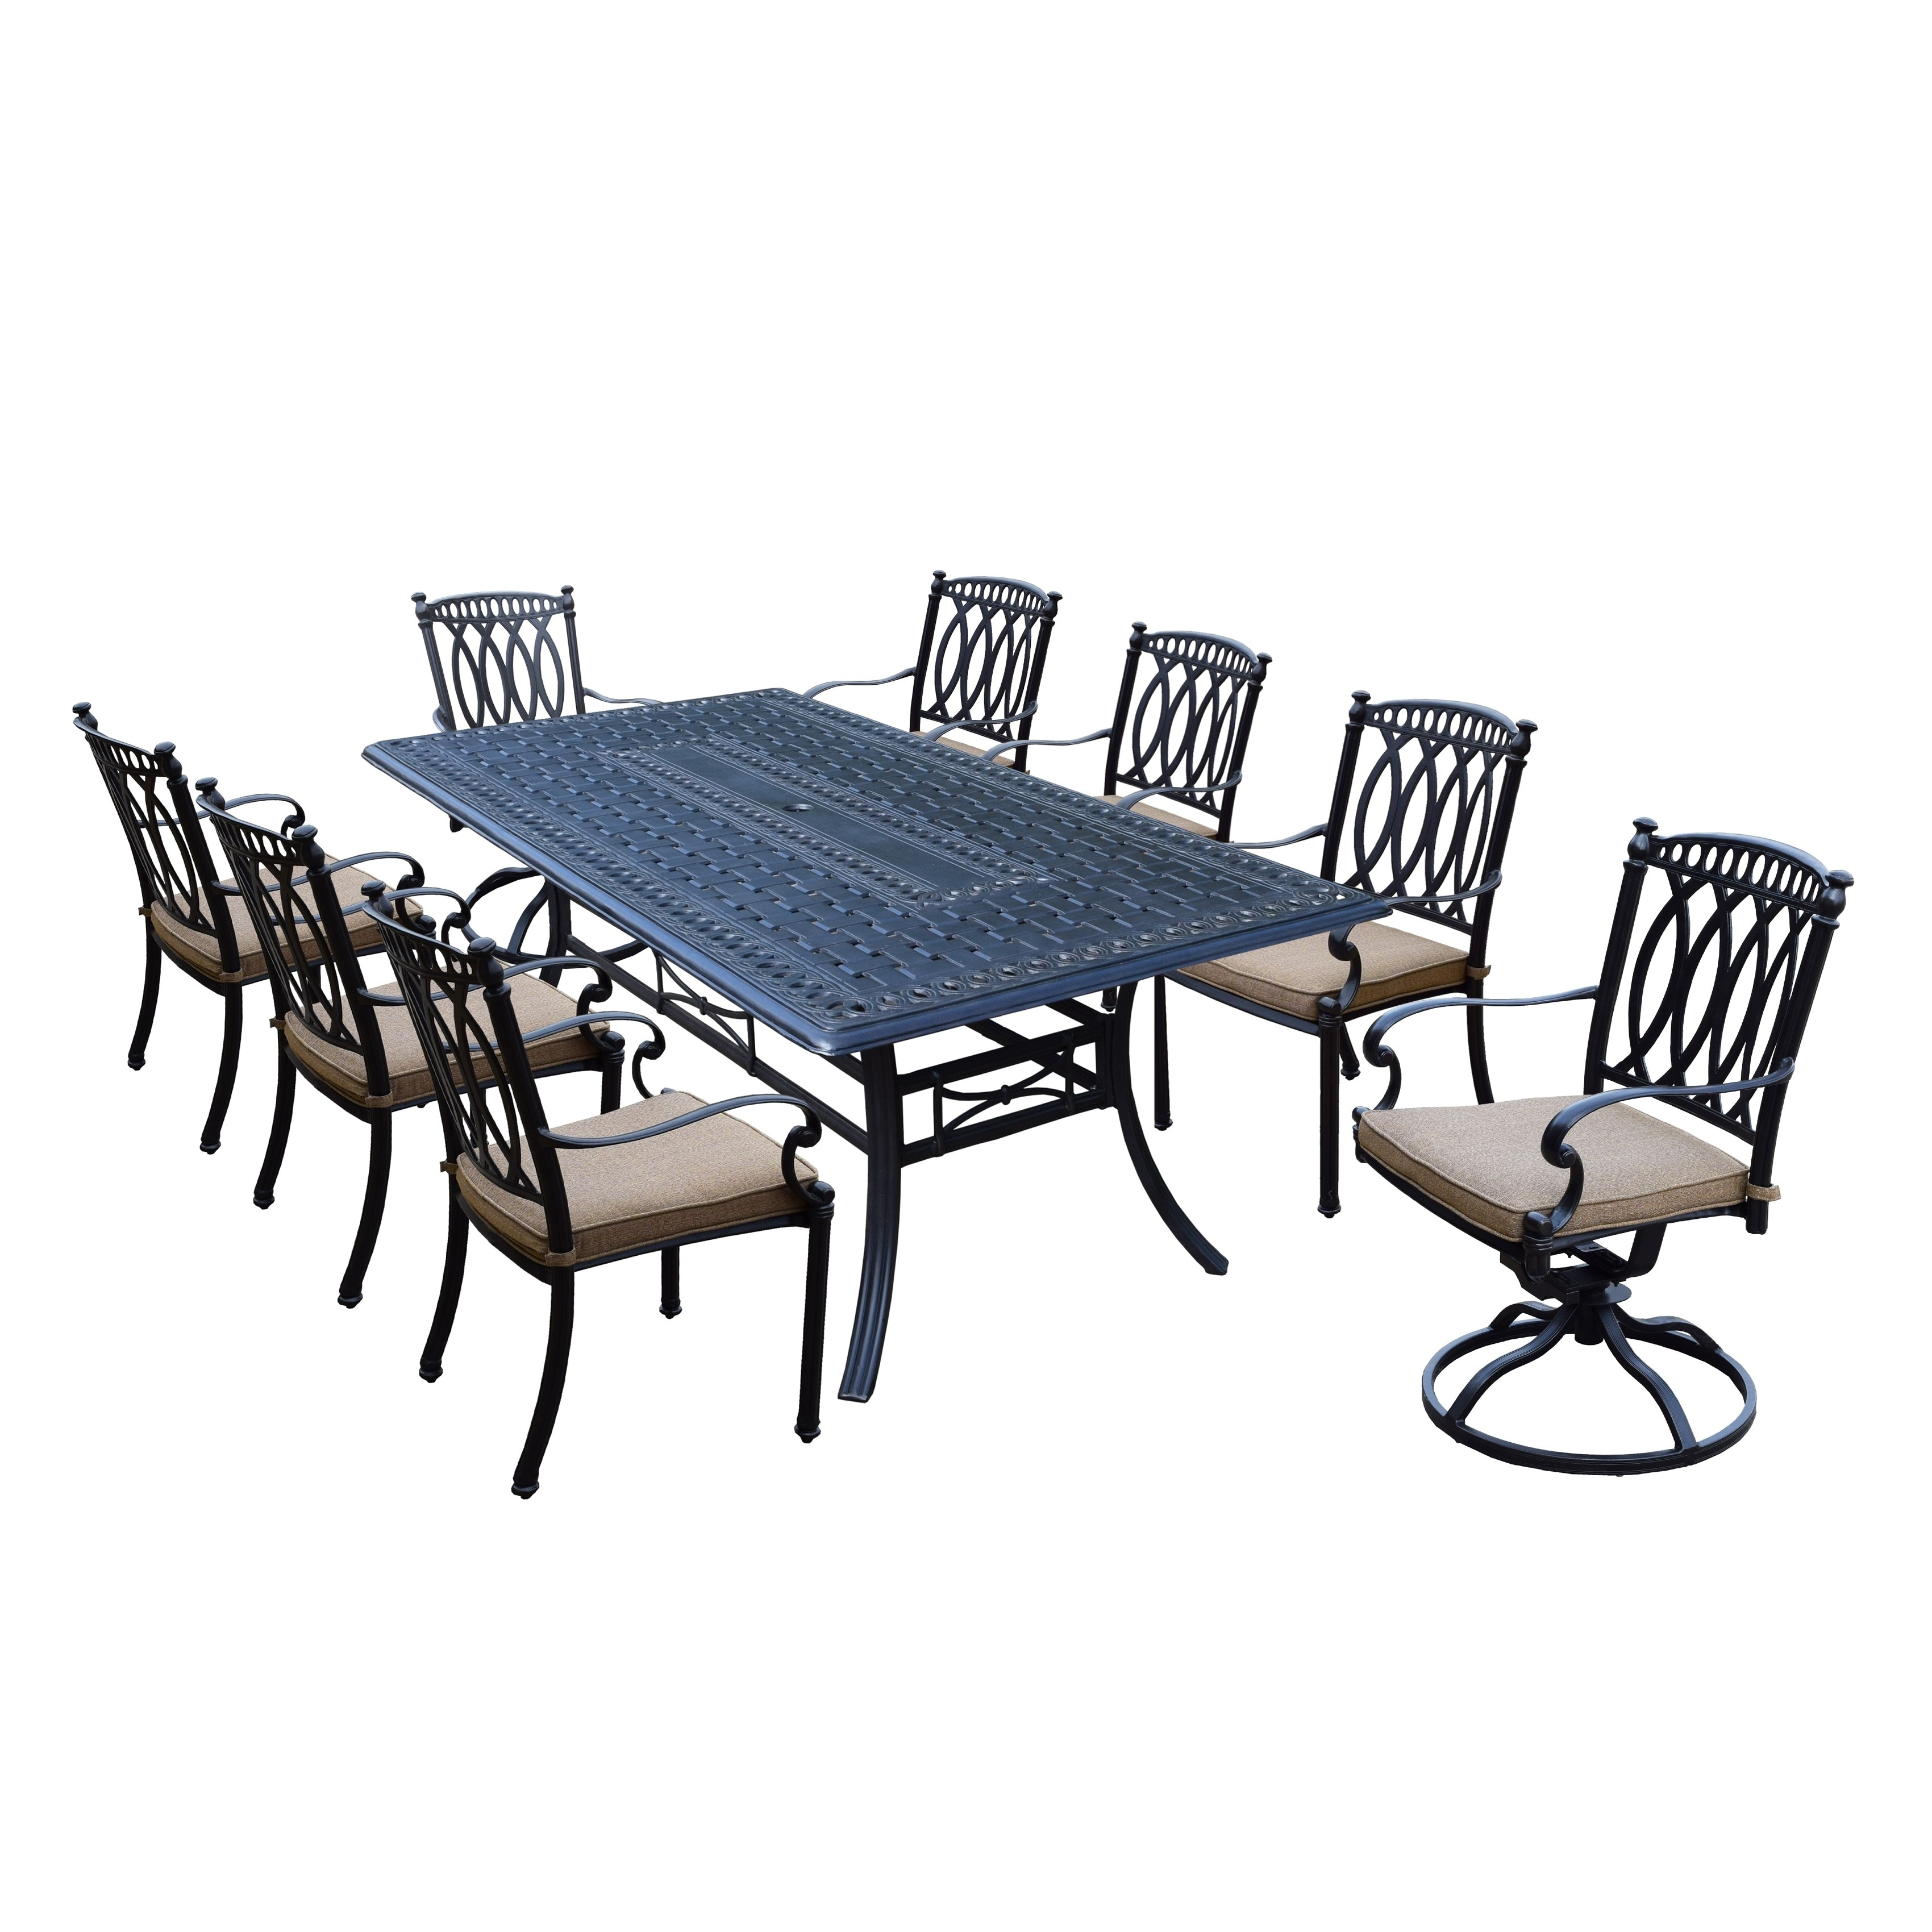 Details About Milan 9 Piece Cast Aluminum Dining Set With Rectangular Table 6 Stackable